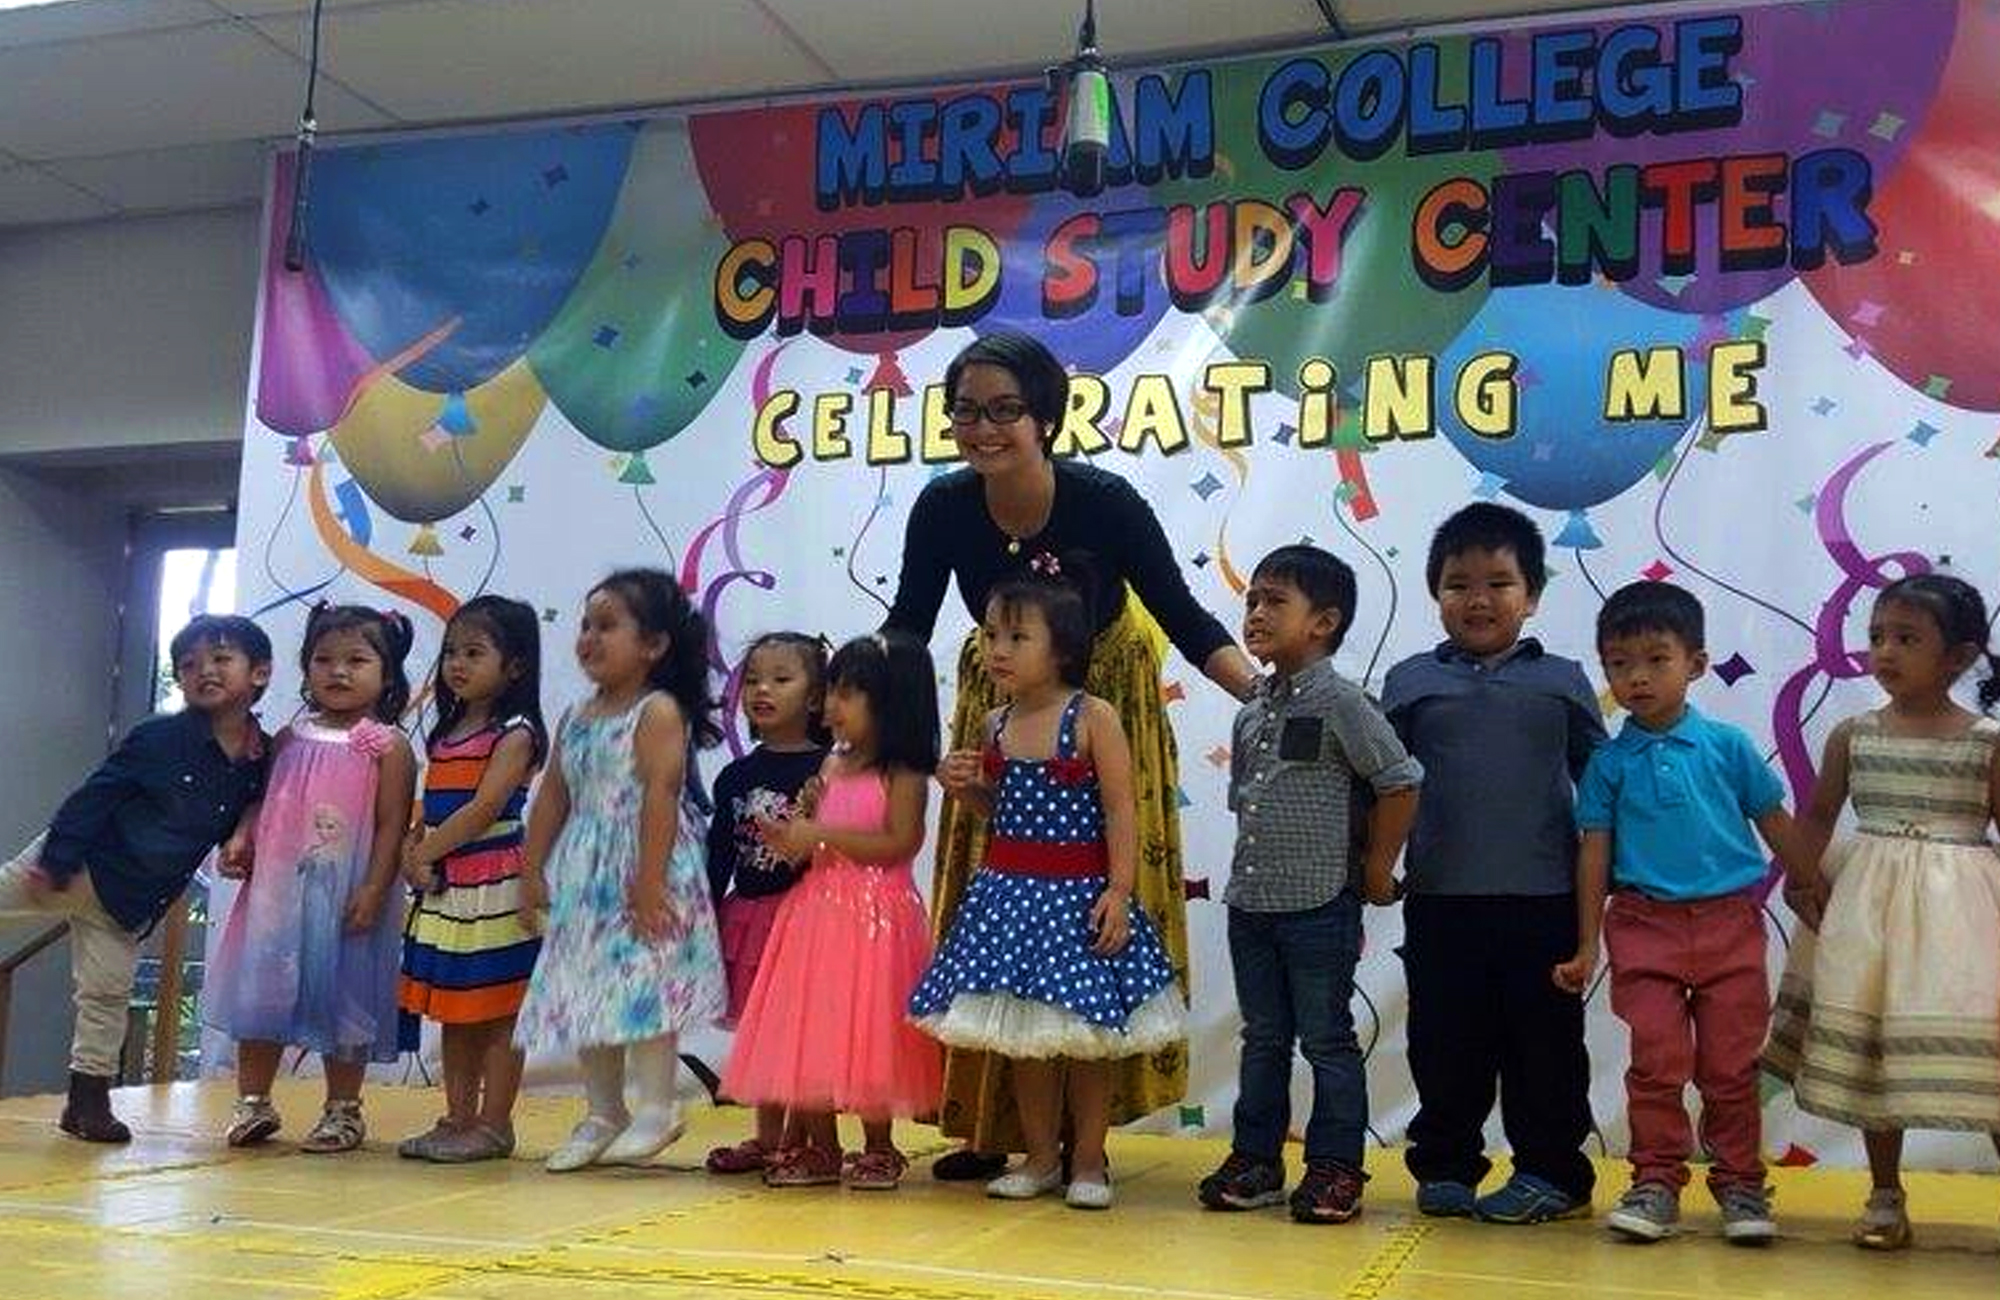 Child Study Center | Miriam College